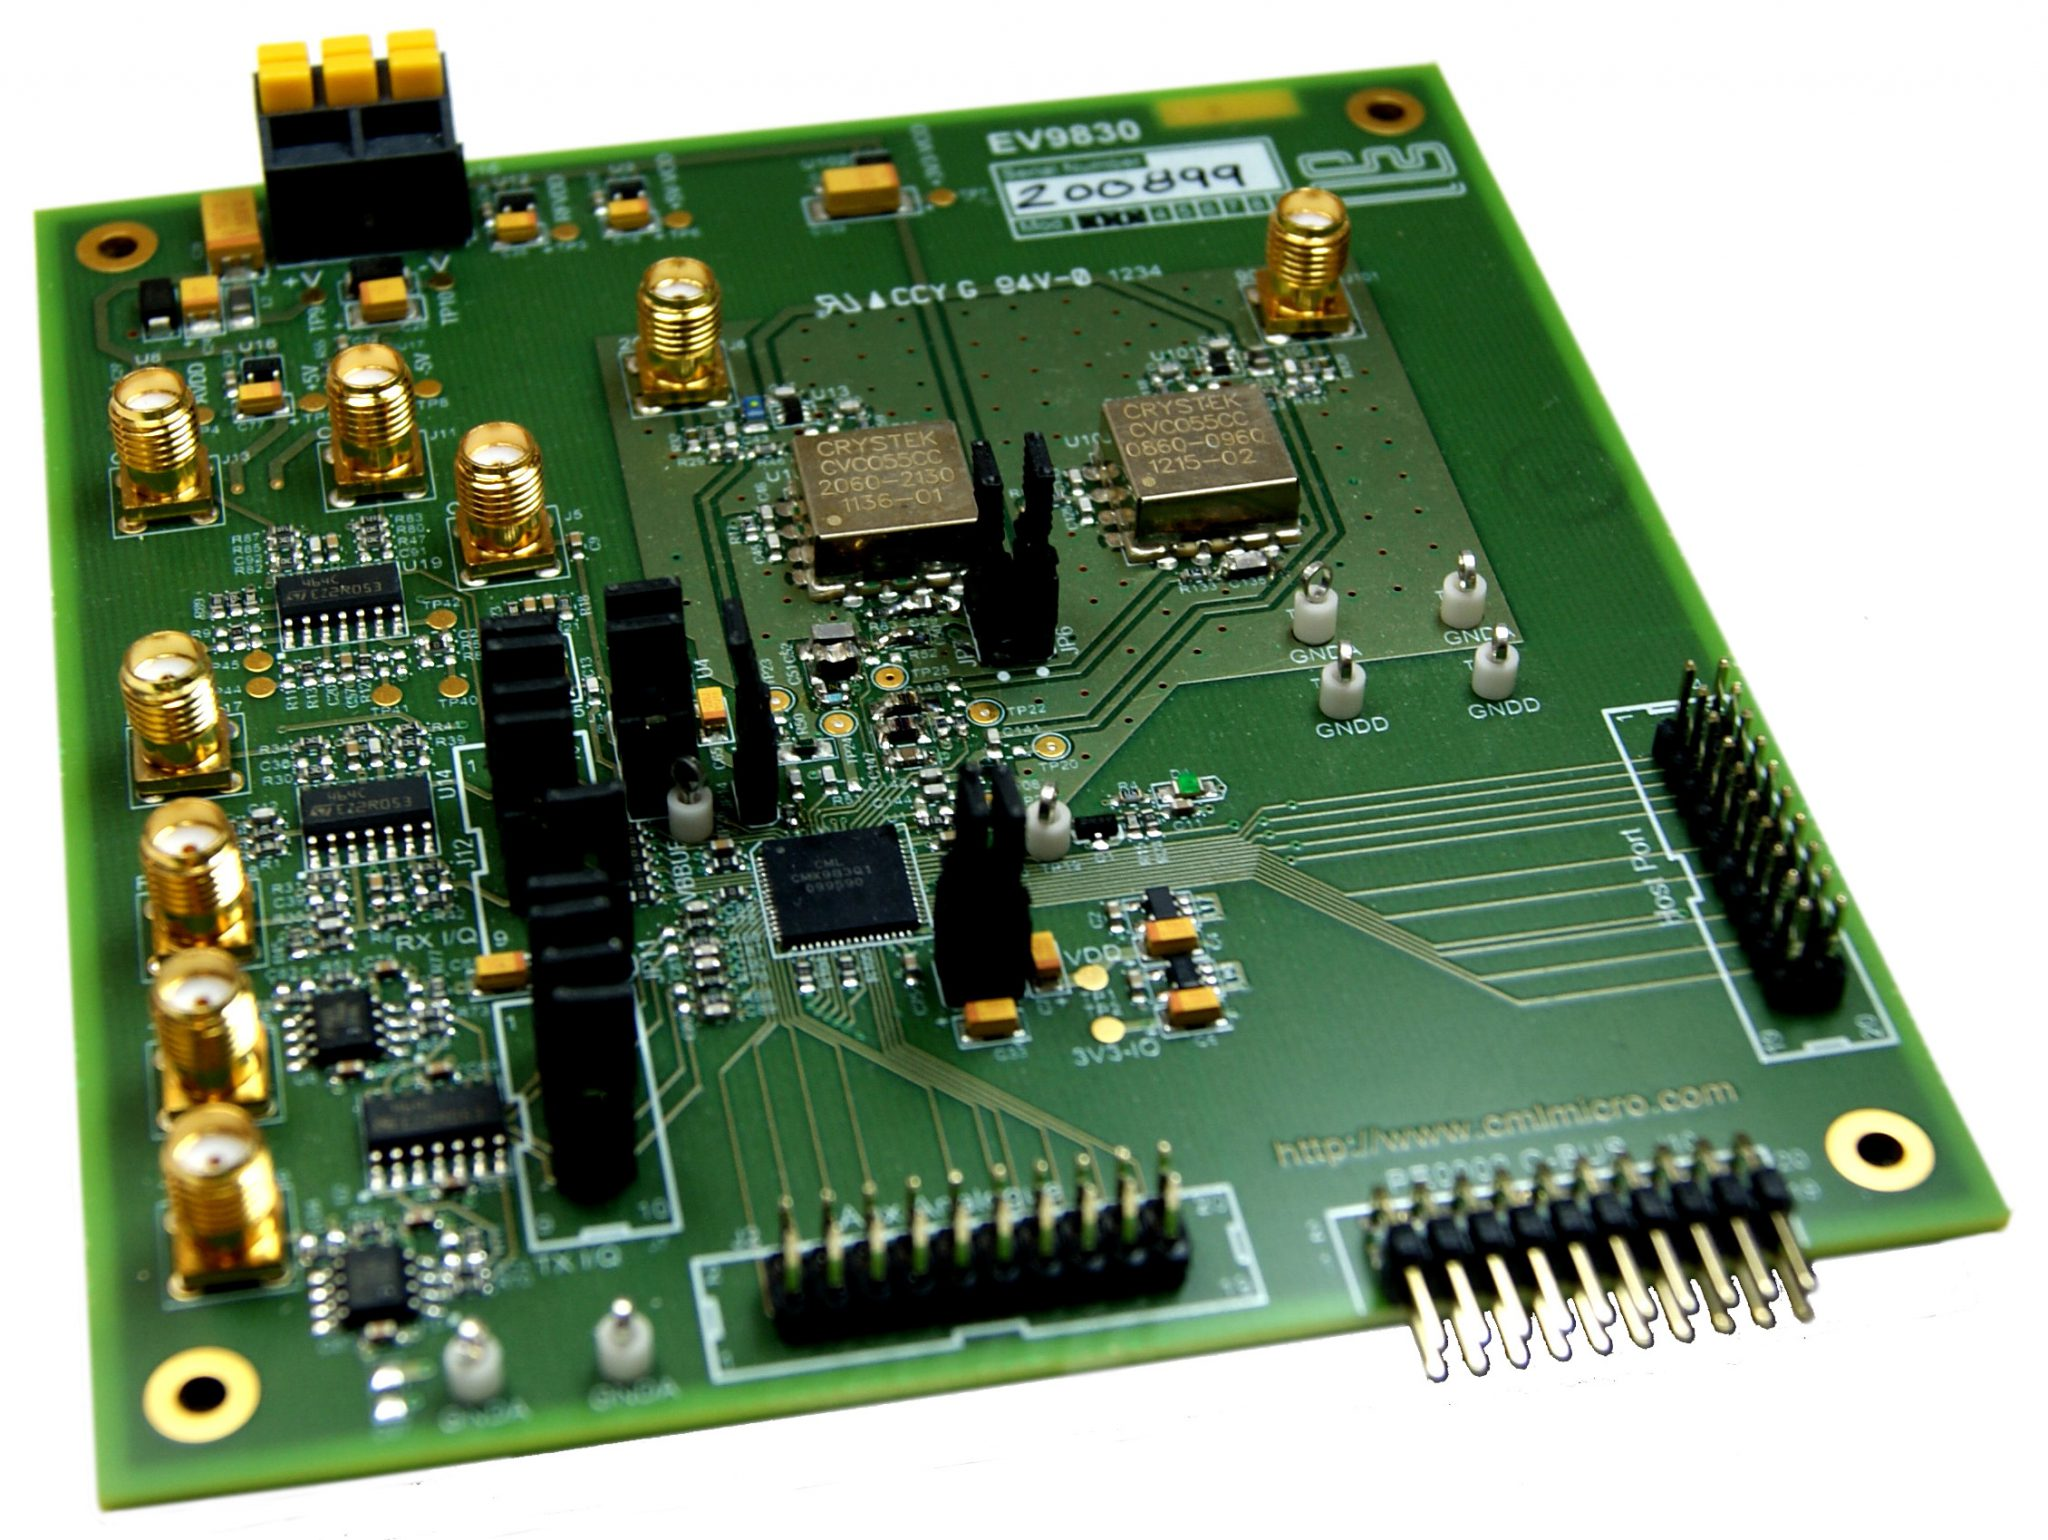 CMX983 - Analogue Front End (AFE) for Digital Radio - CML